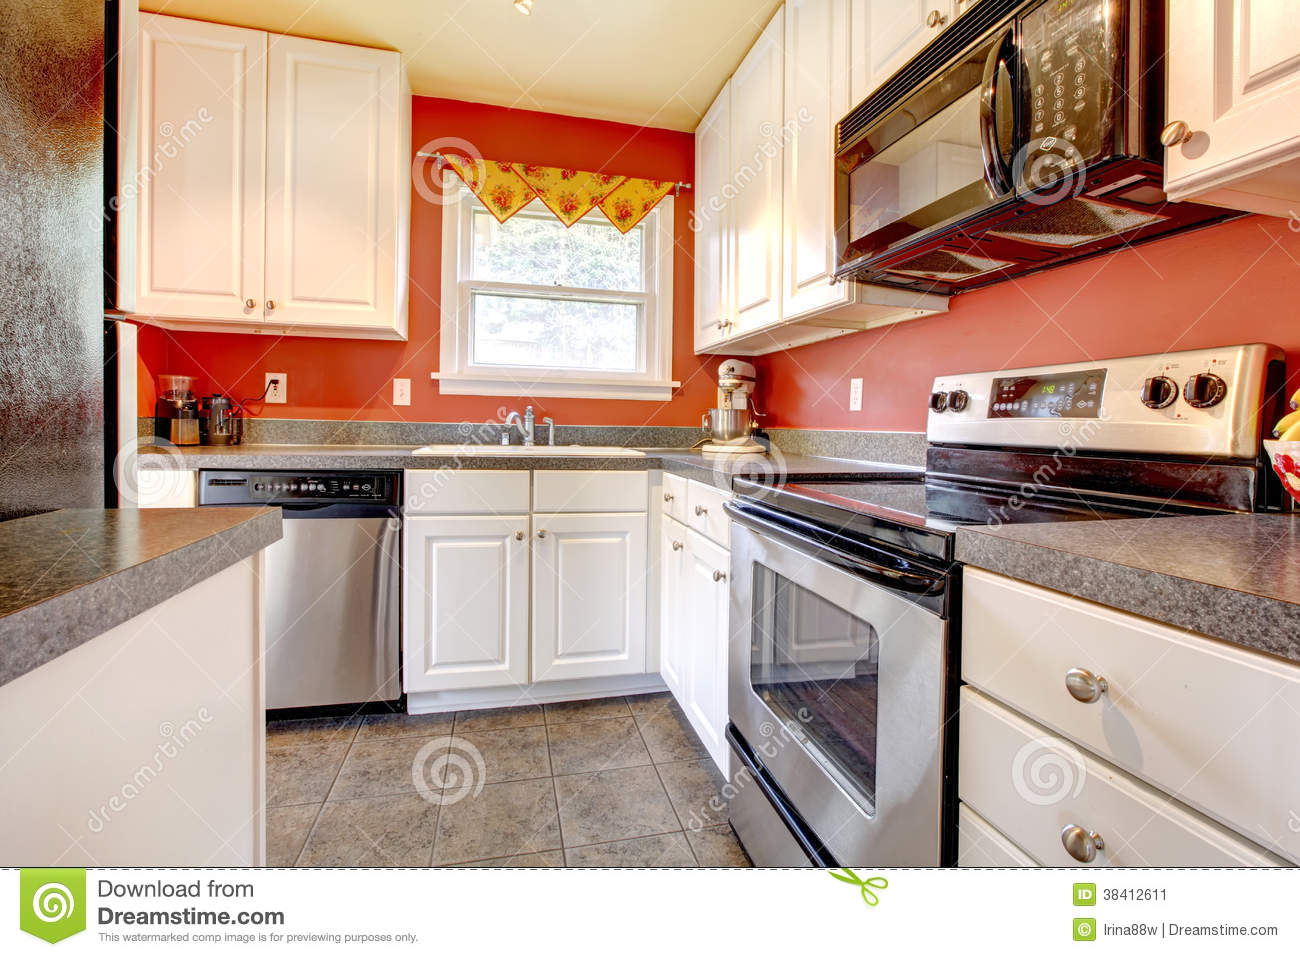 Cozy Kitchen Room With Red Wall And White Cabinets Stock Image Image Of Home American 38412611